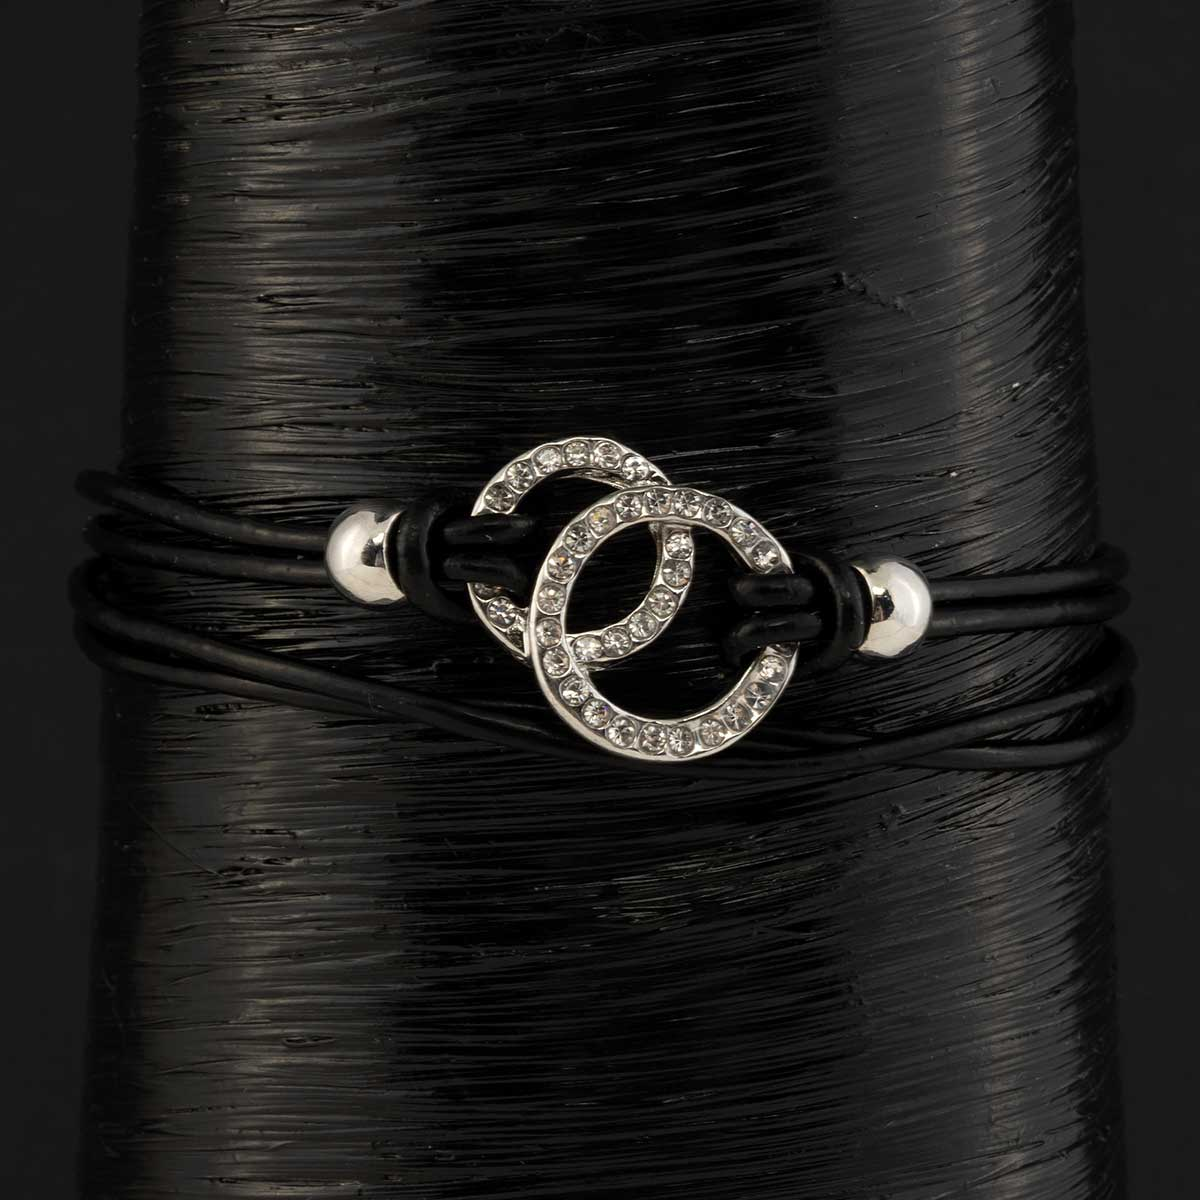 Silver Double Circle with Crystals on Black Cord Bracelet with M